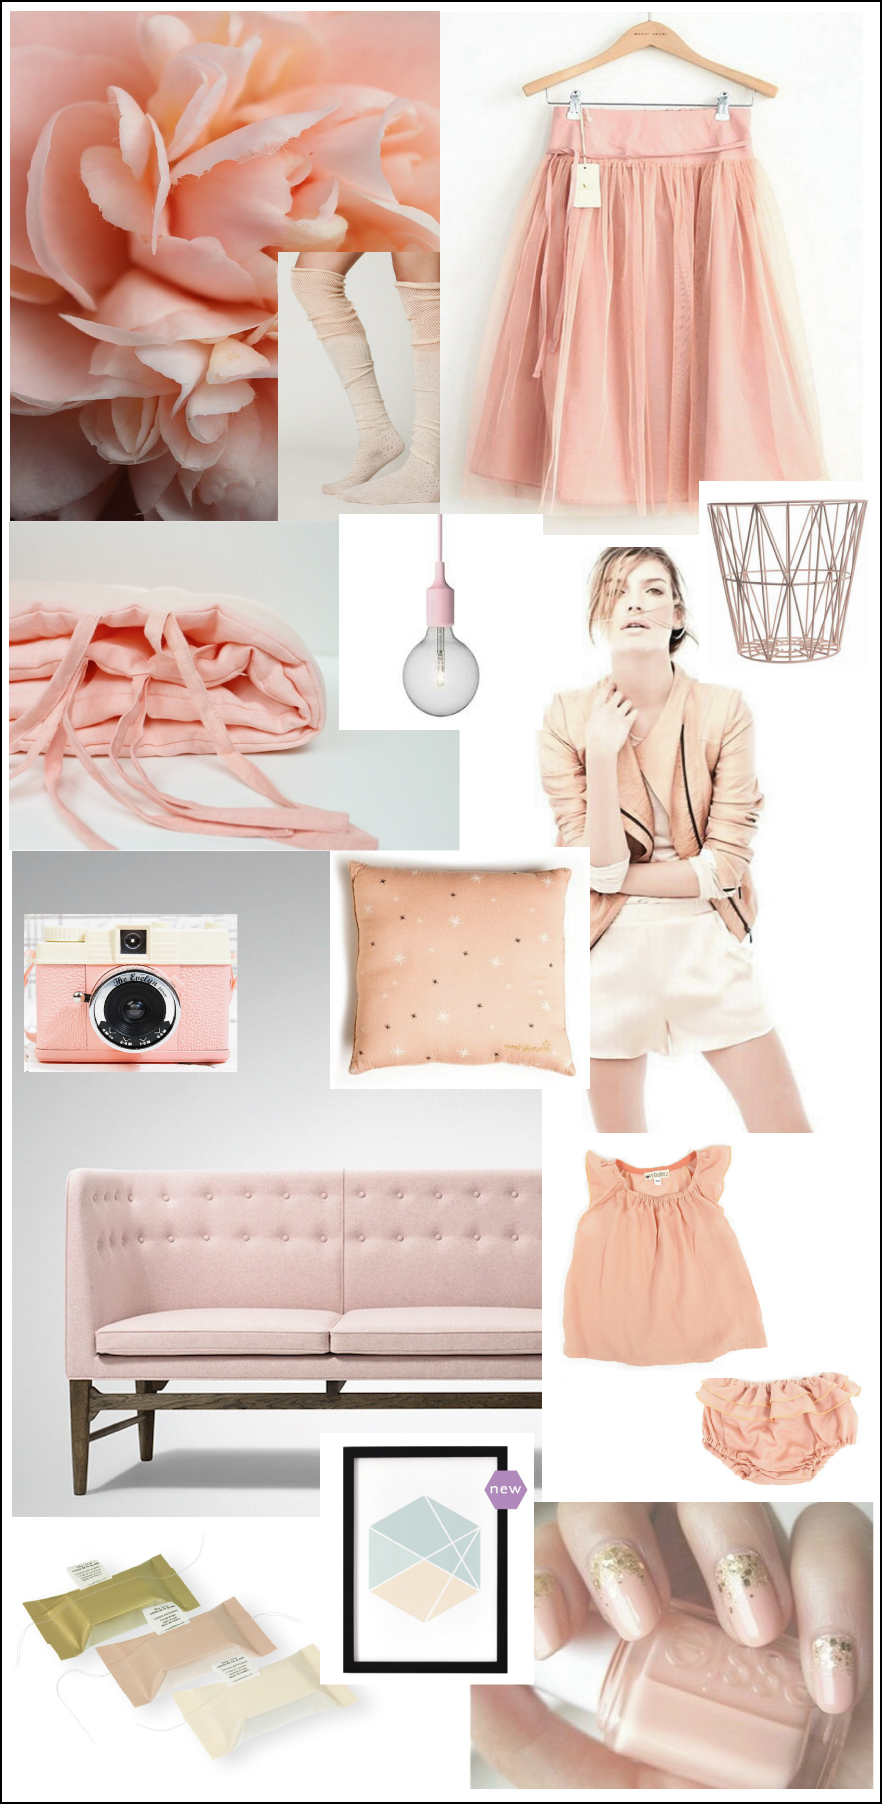 rose-nude-mood-board-chiara stella home trend